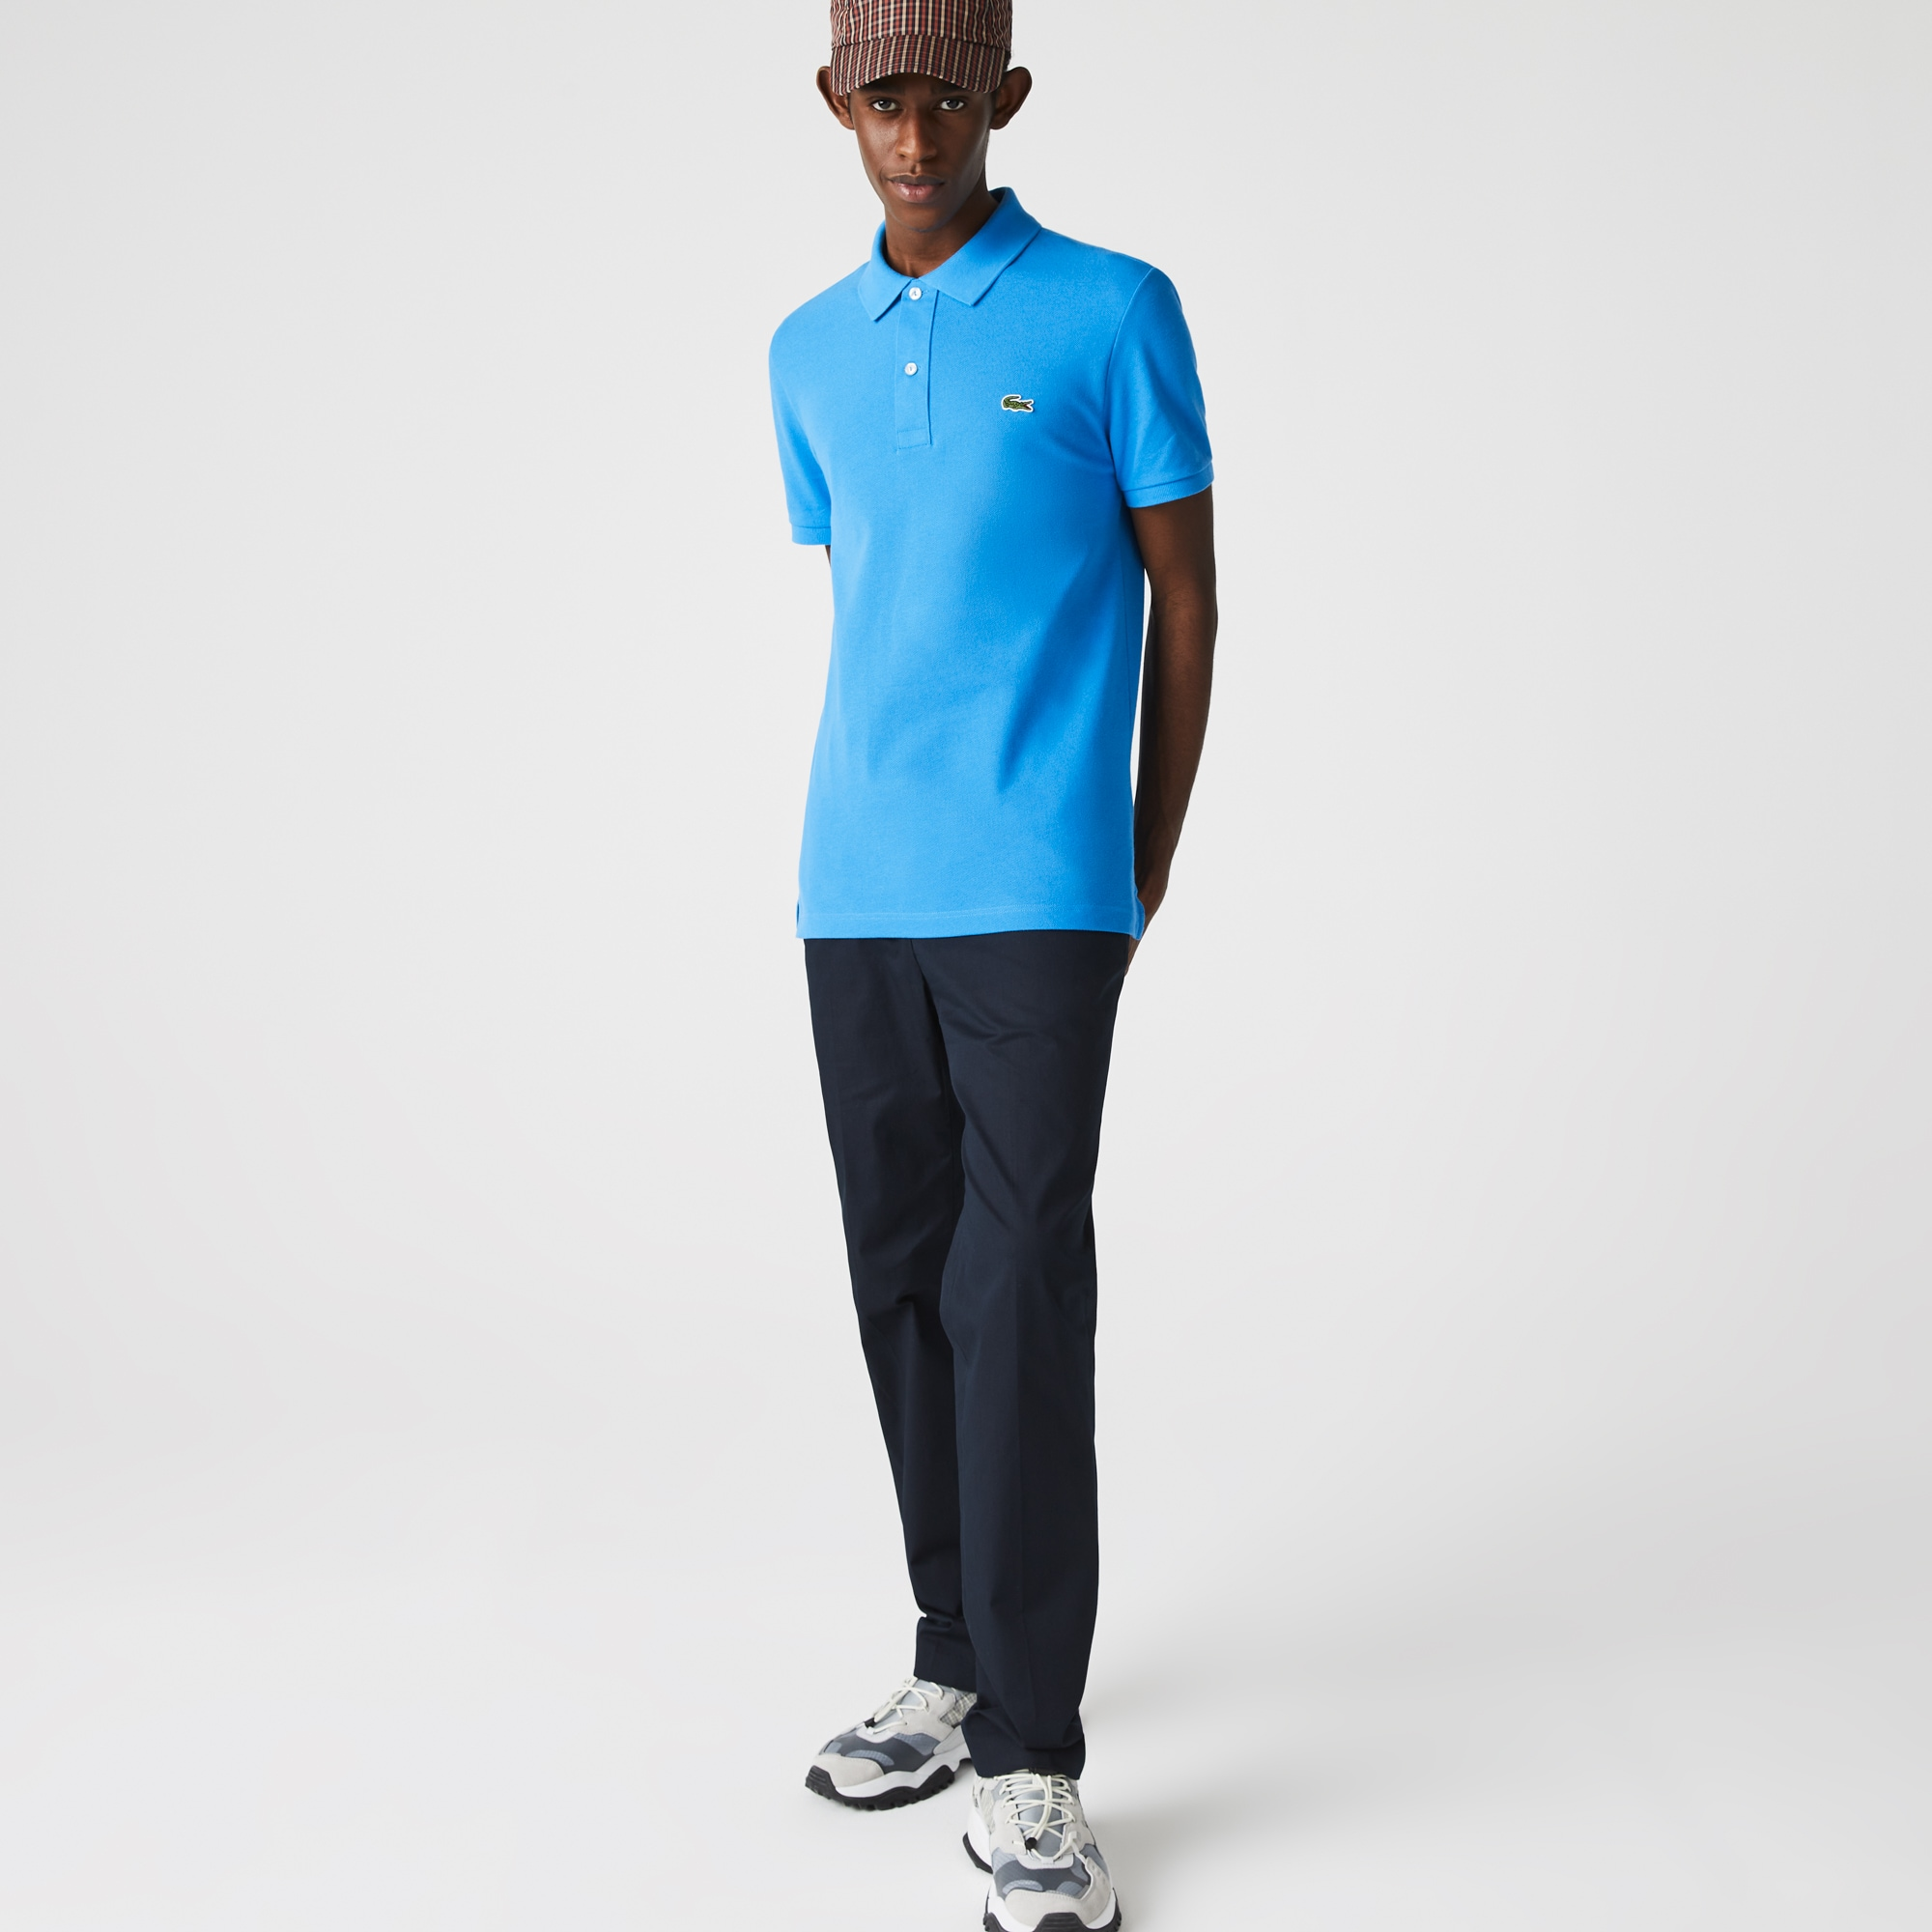 05b946946a Robe polo en mini piqué de coton stretch uni. 145,00 €. + 40 couleurs